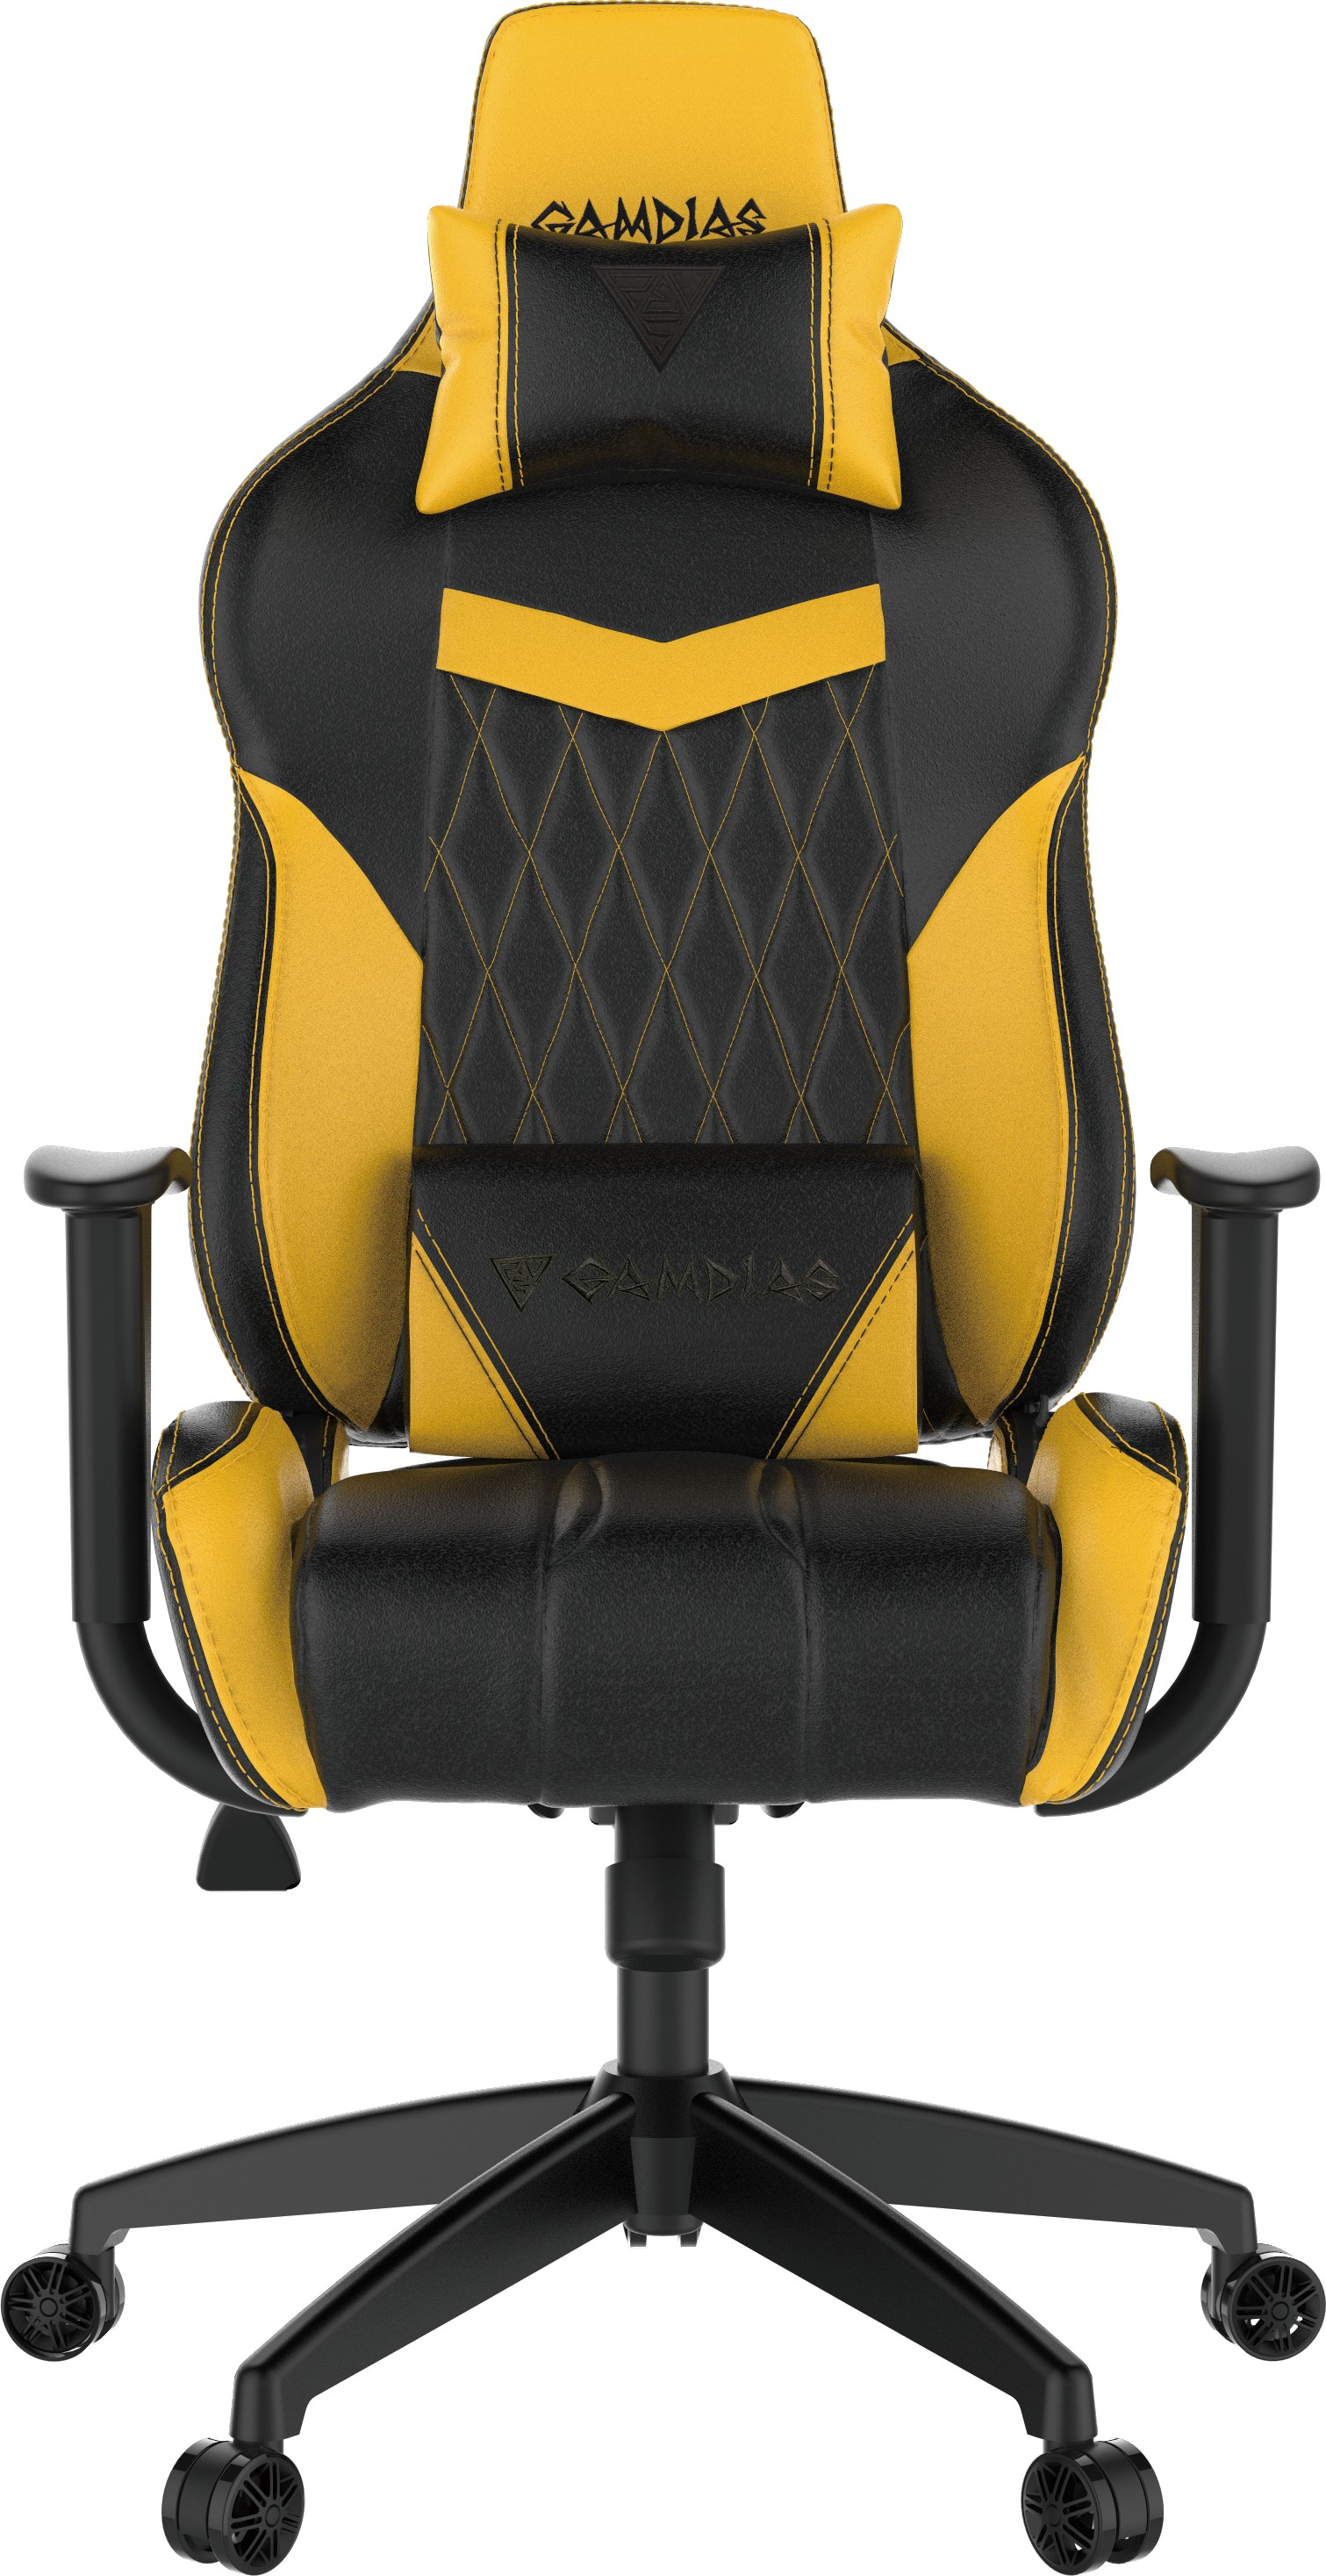 GAMING CHAIR GAMDIAS Achilles E2-L Black/Red